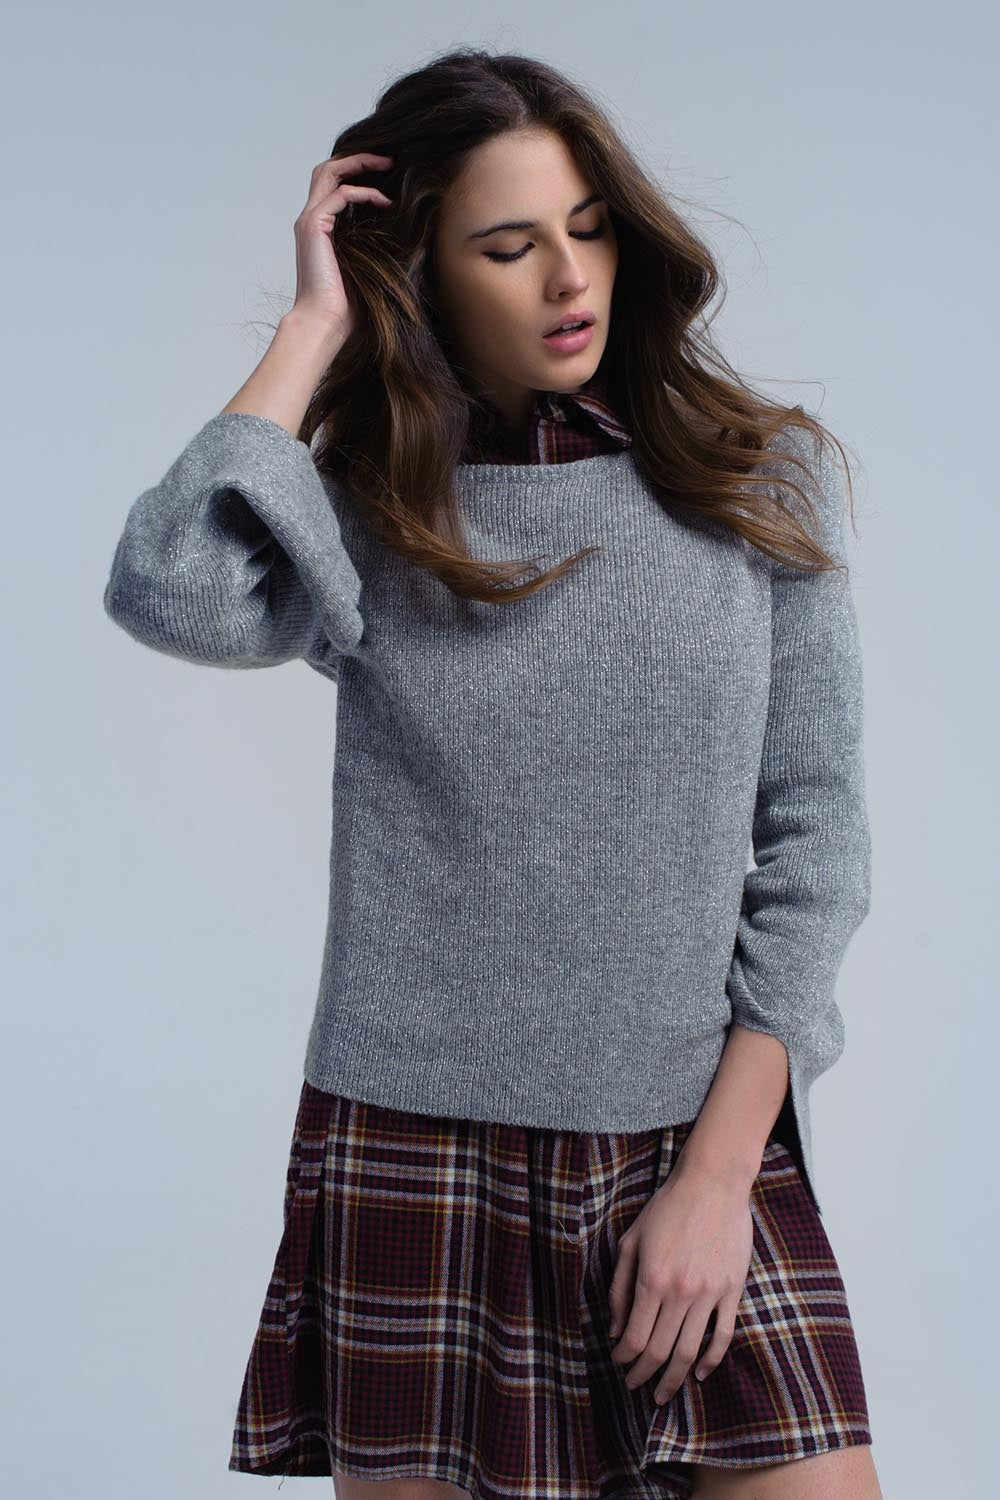 Gray Shiny Sweater-Women - Apparel - Sweaters - Pull Over-Product Details Gray shiny sweater with a crew neck, a round hem and long sleeves. The cuffs are wide and have little splits.-Keyomi-Sook